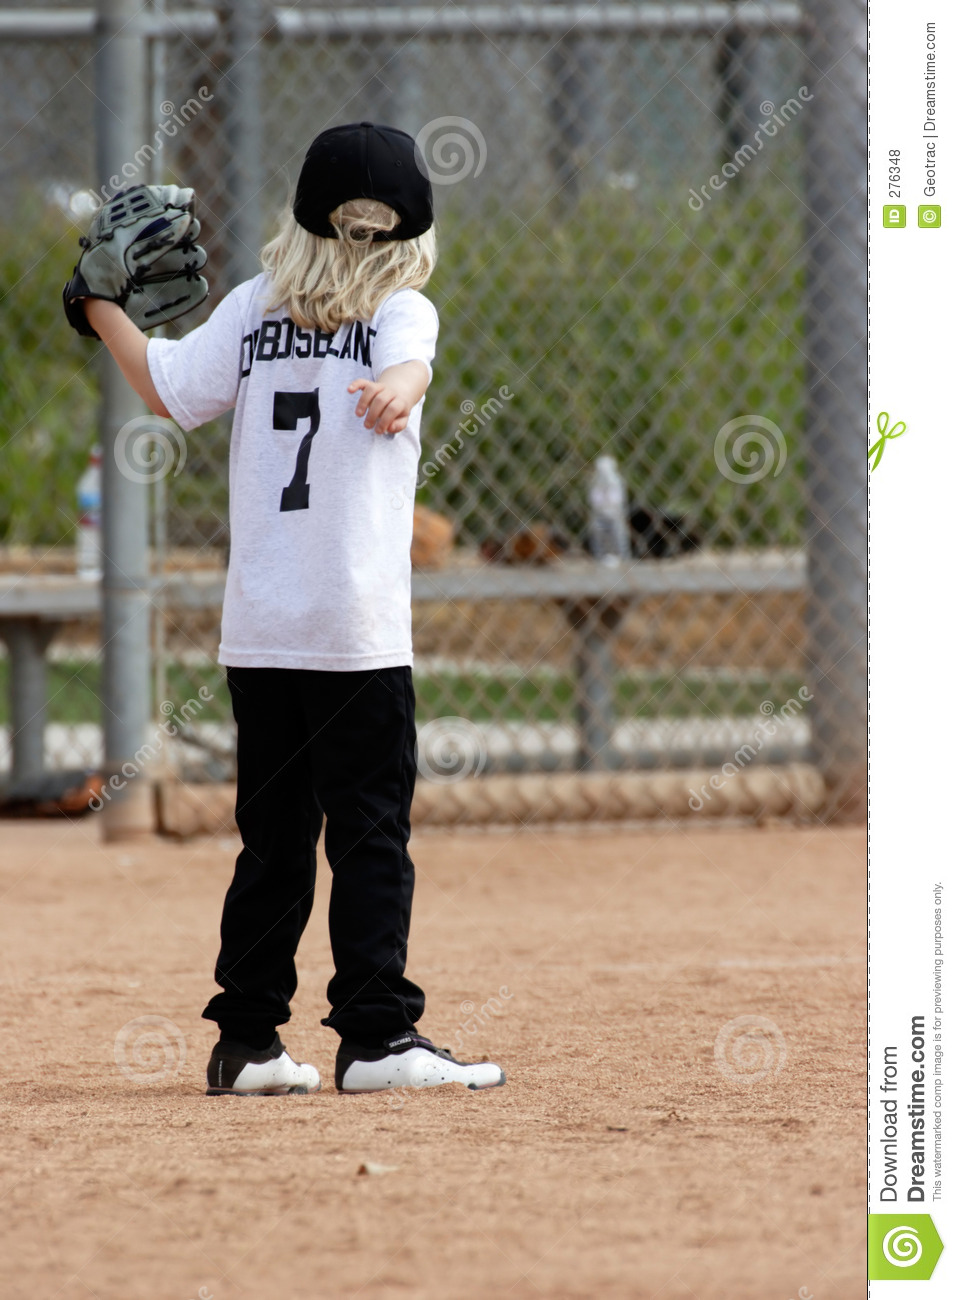 essay girls play baseball For more than a century, baseball has been a sport for young and old to play, but it also is a form of exercise while the professional level of the sport has experienced some ebb and flow in prominence, baseball remains a staple youth activity around the world.